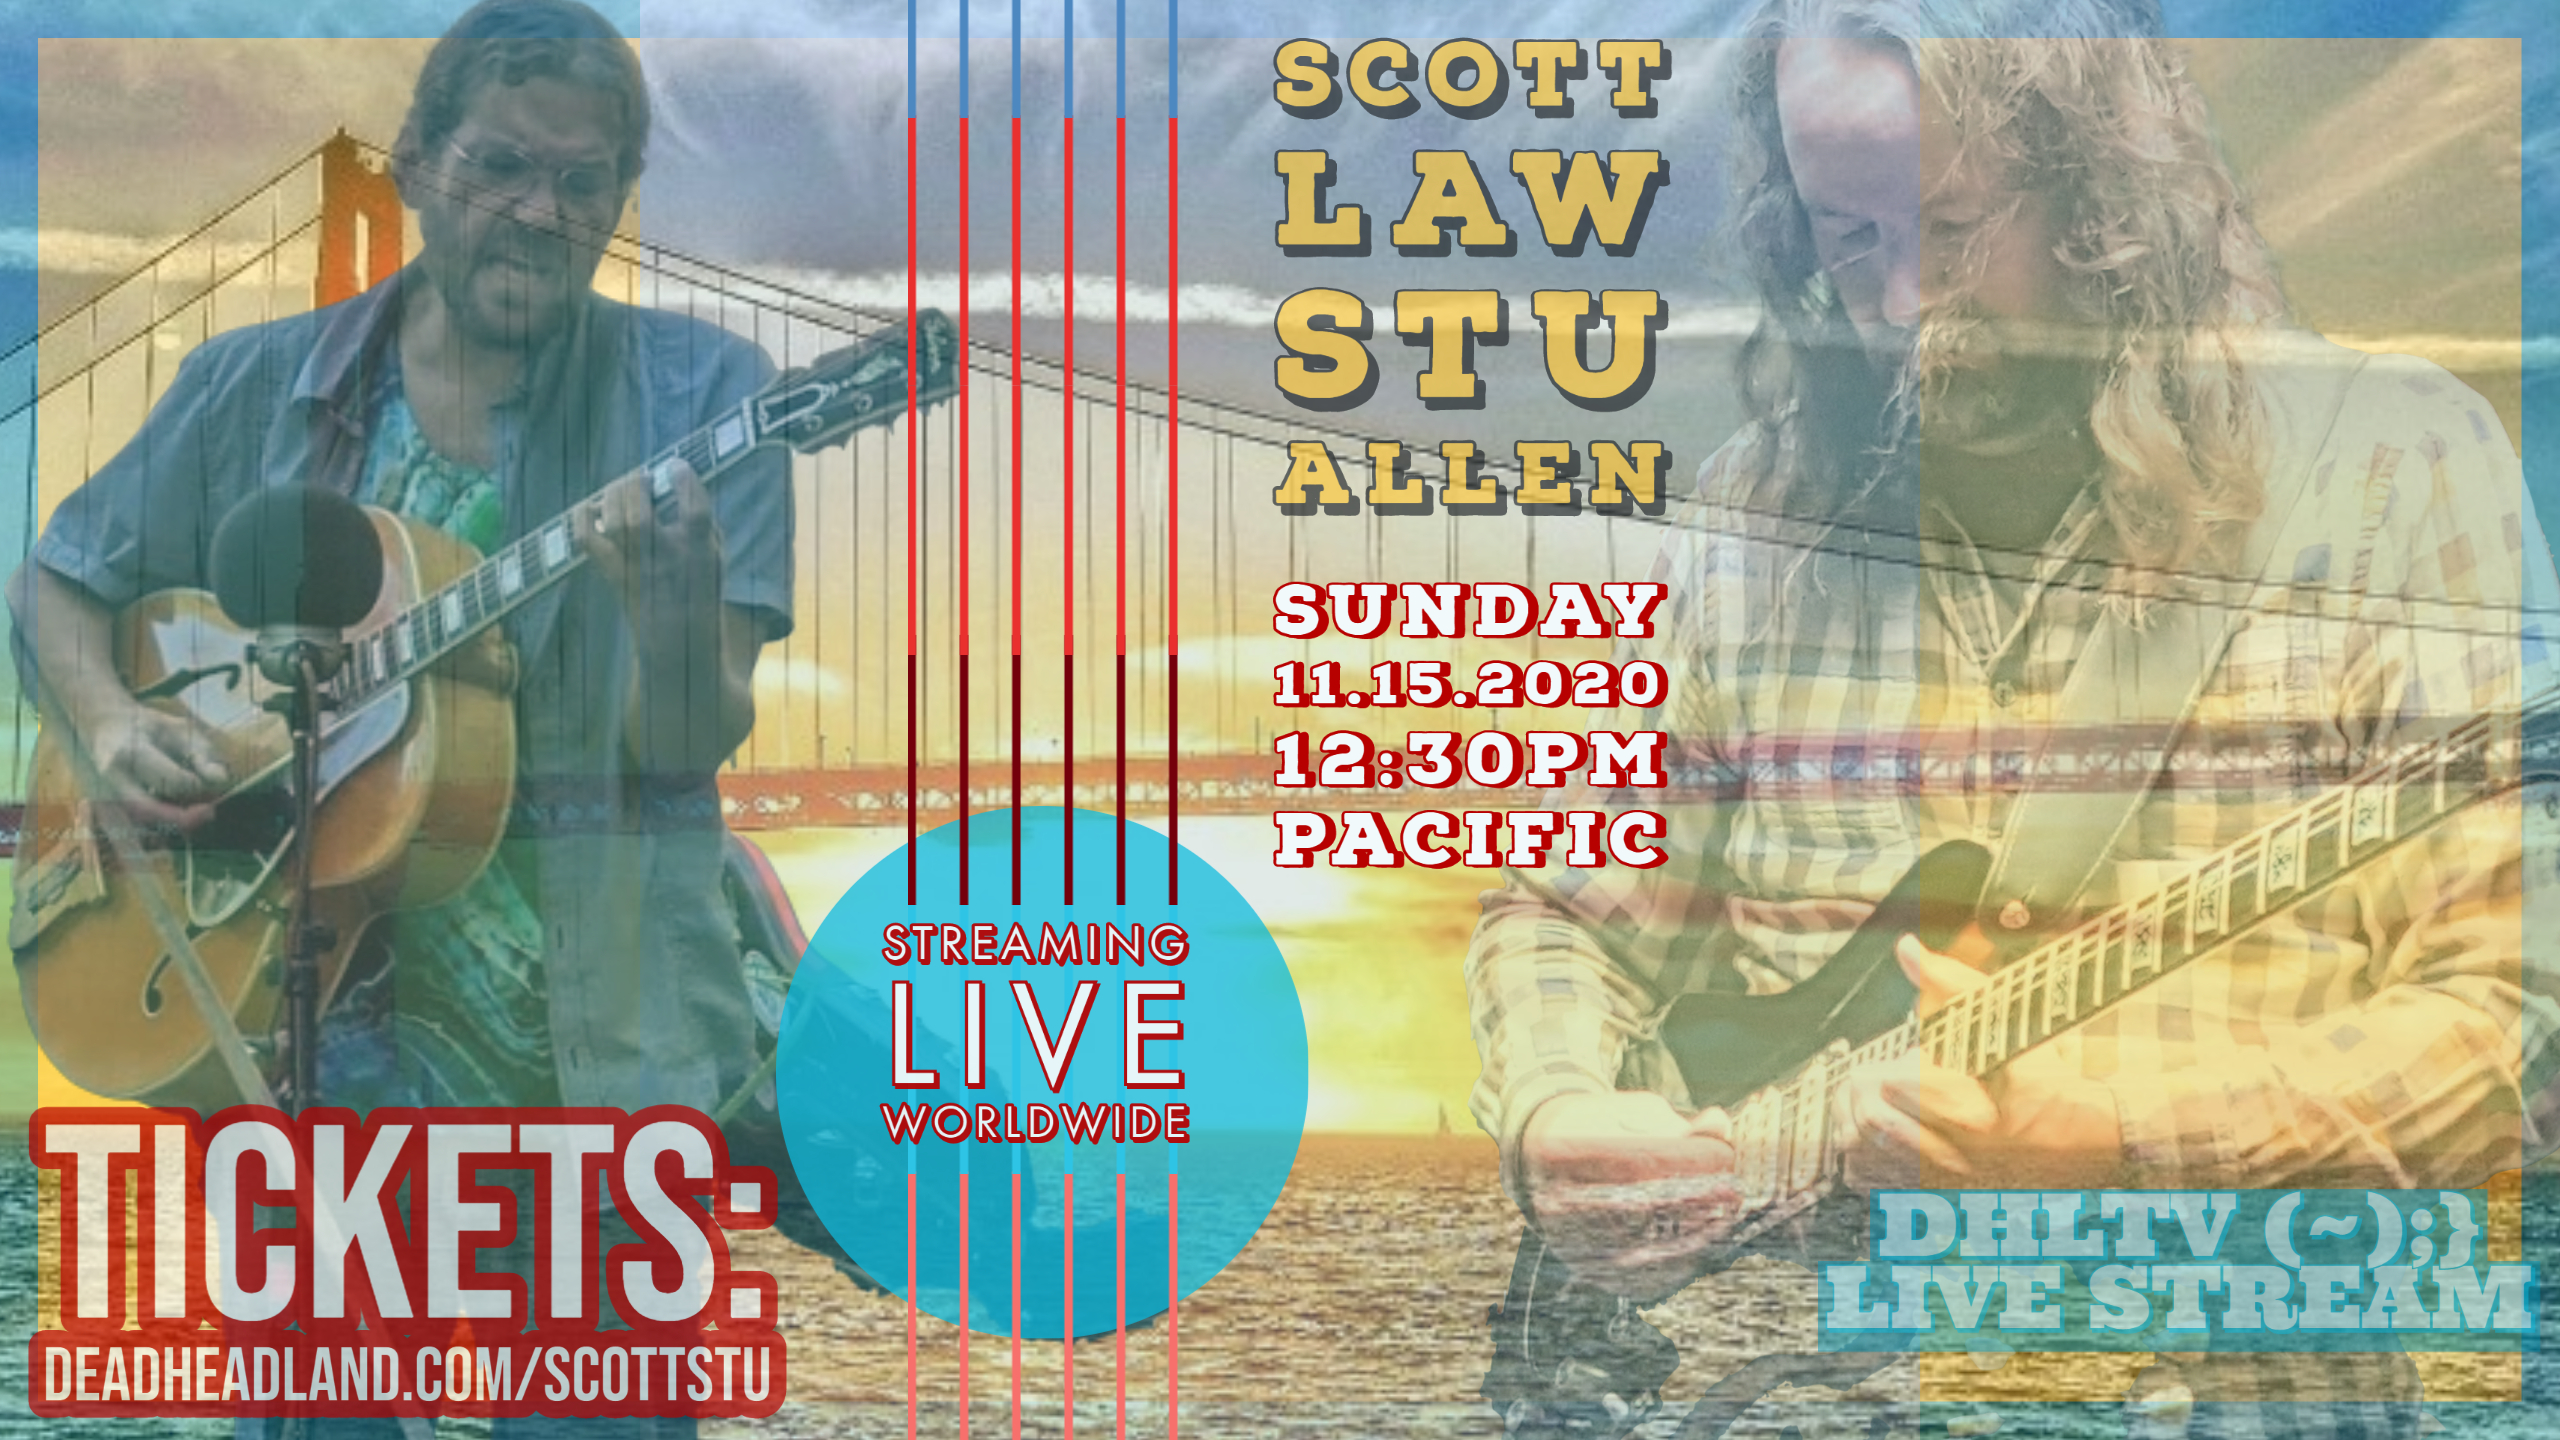 Photo for Scott Law & Stu Allen | Sunday November 15, 2020 on ViewStub